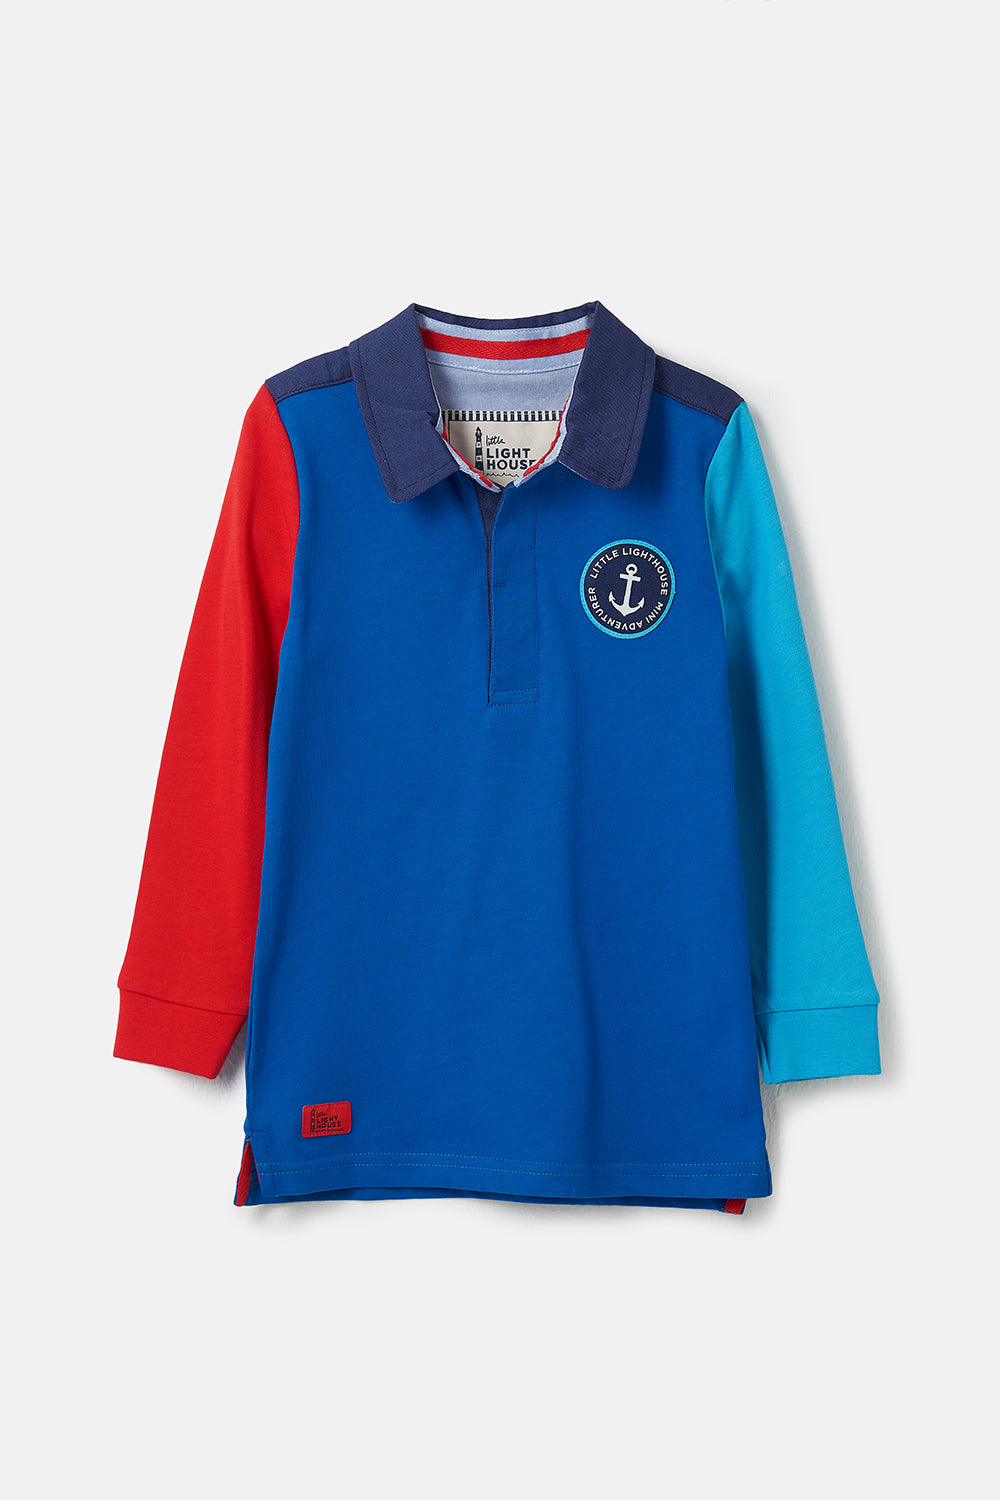 Lighthouse Alfie - Boys Striped Rugby Shirt - Ocean Blue